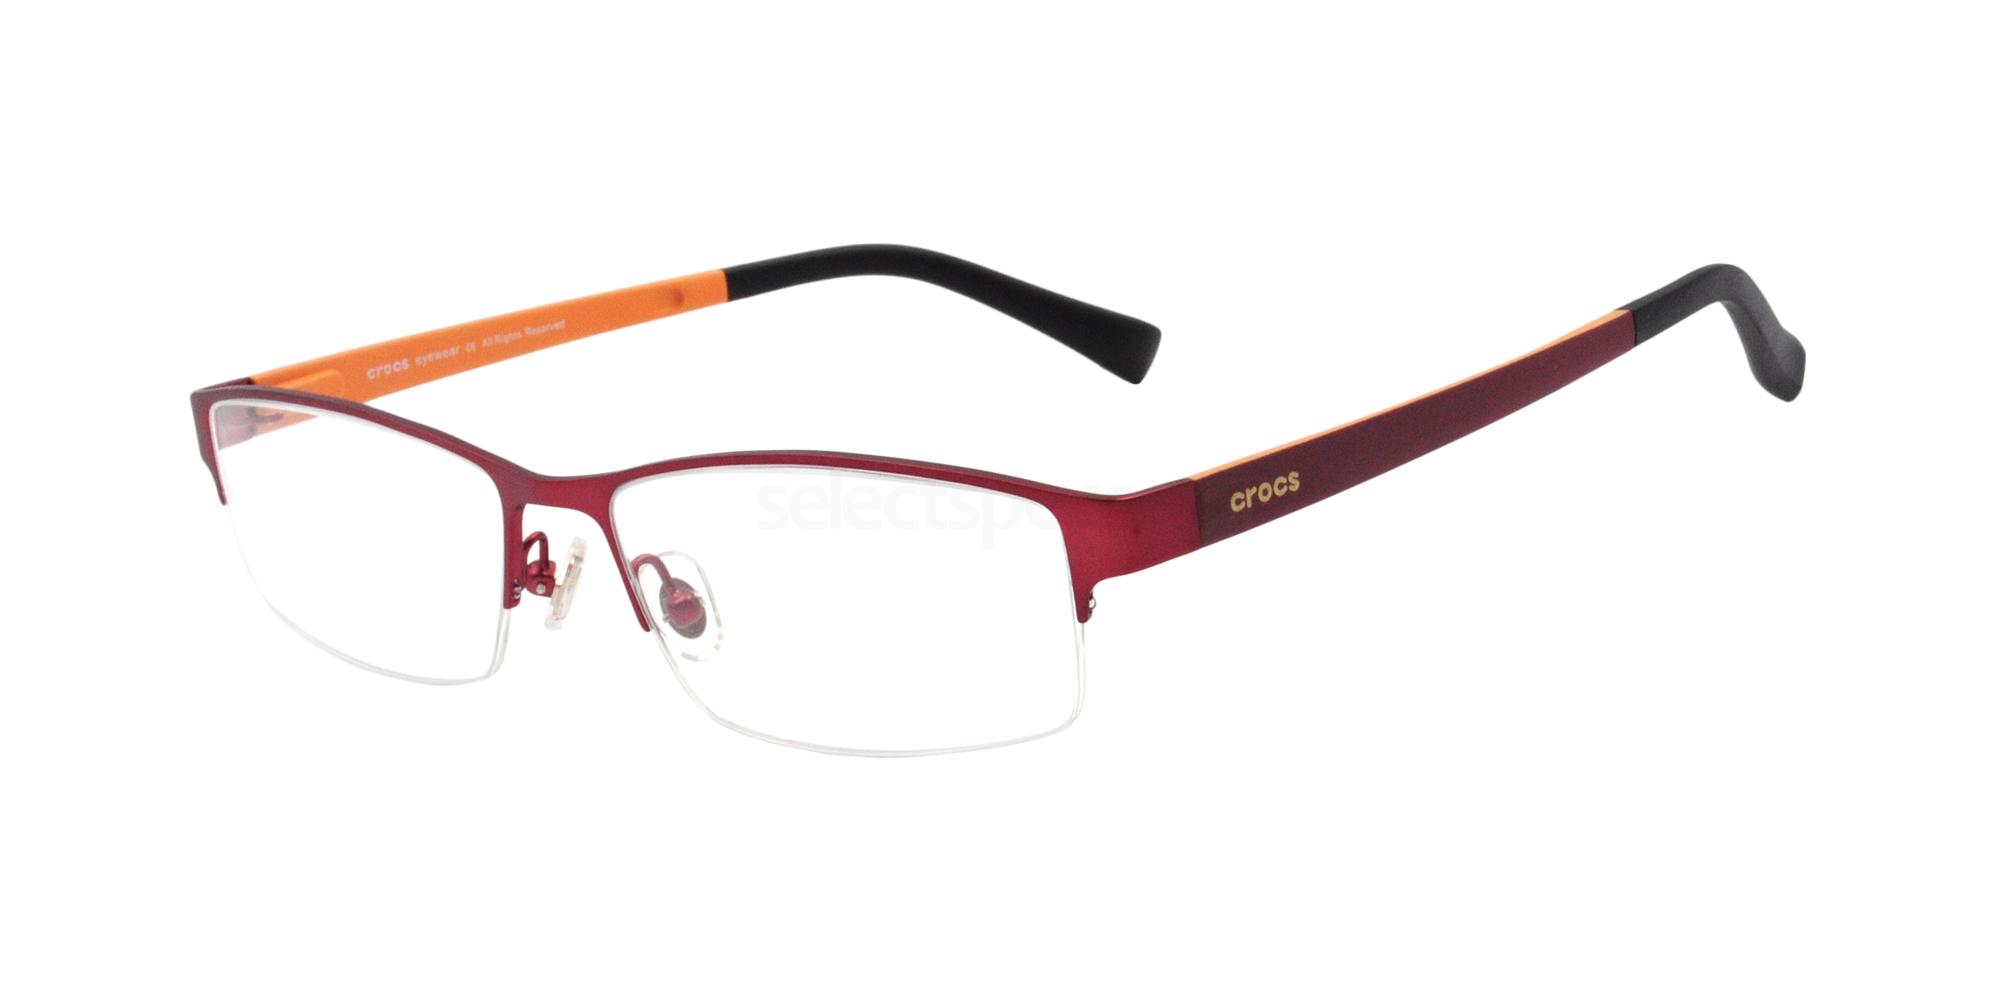 15BN CF4005 Glasses, Crocs Eyewear